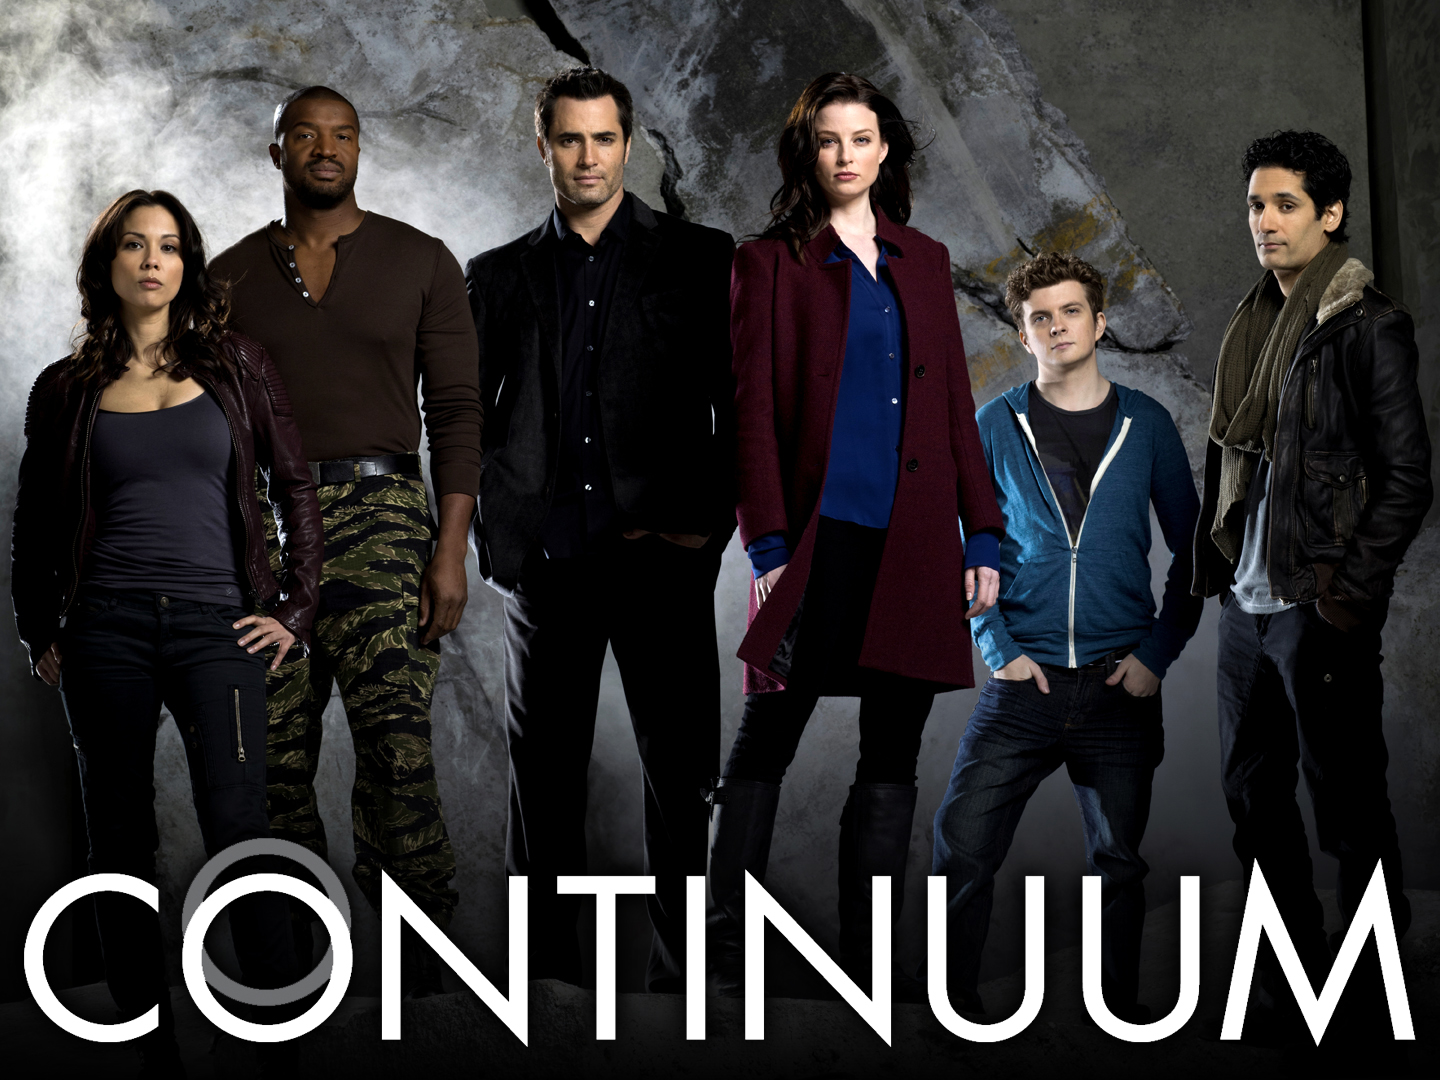 How many episodes of continuum are there